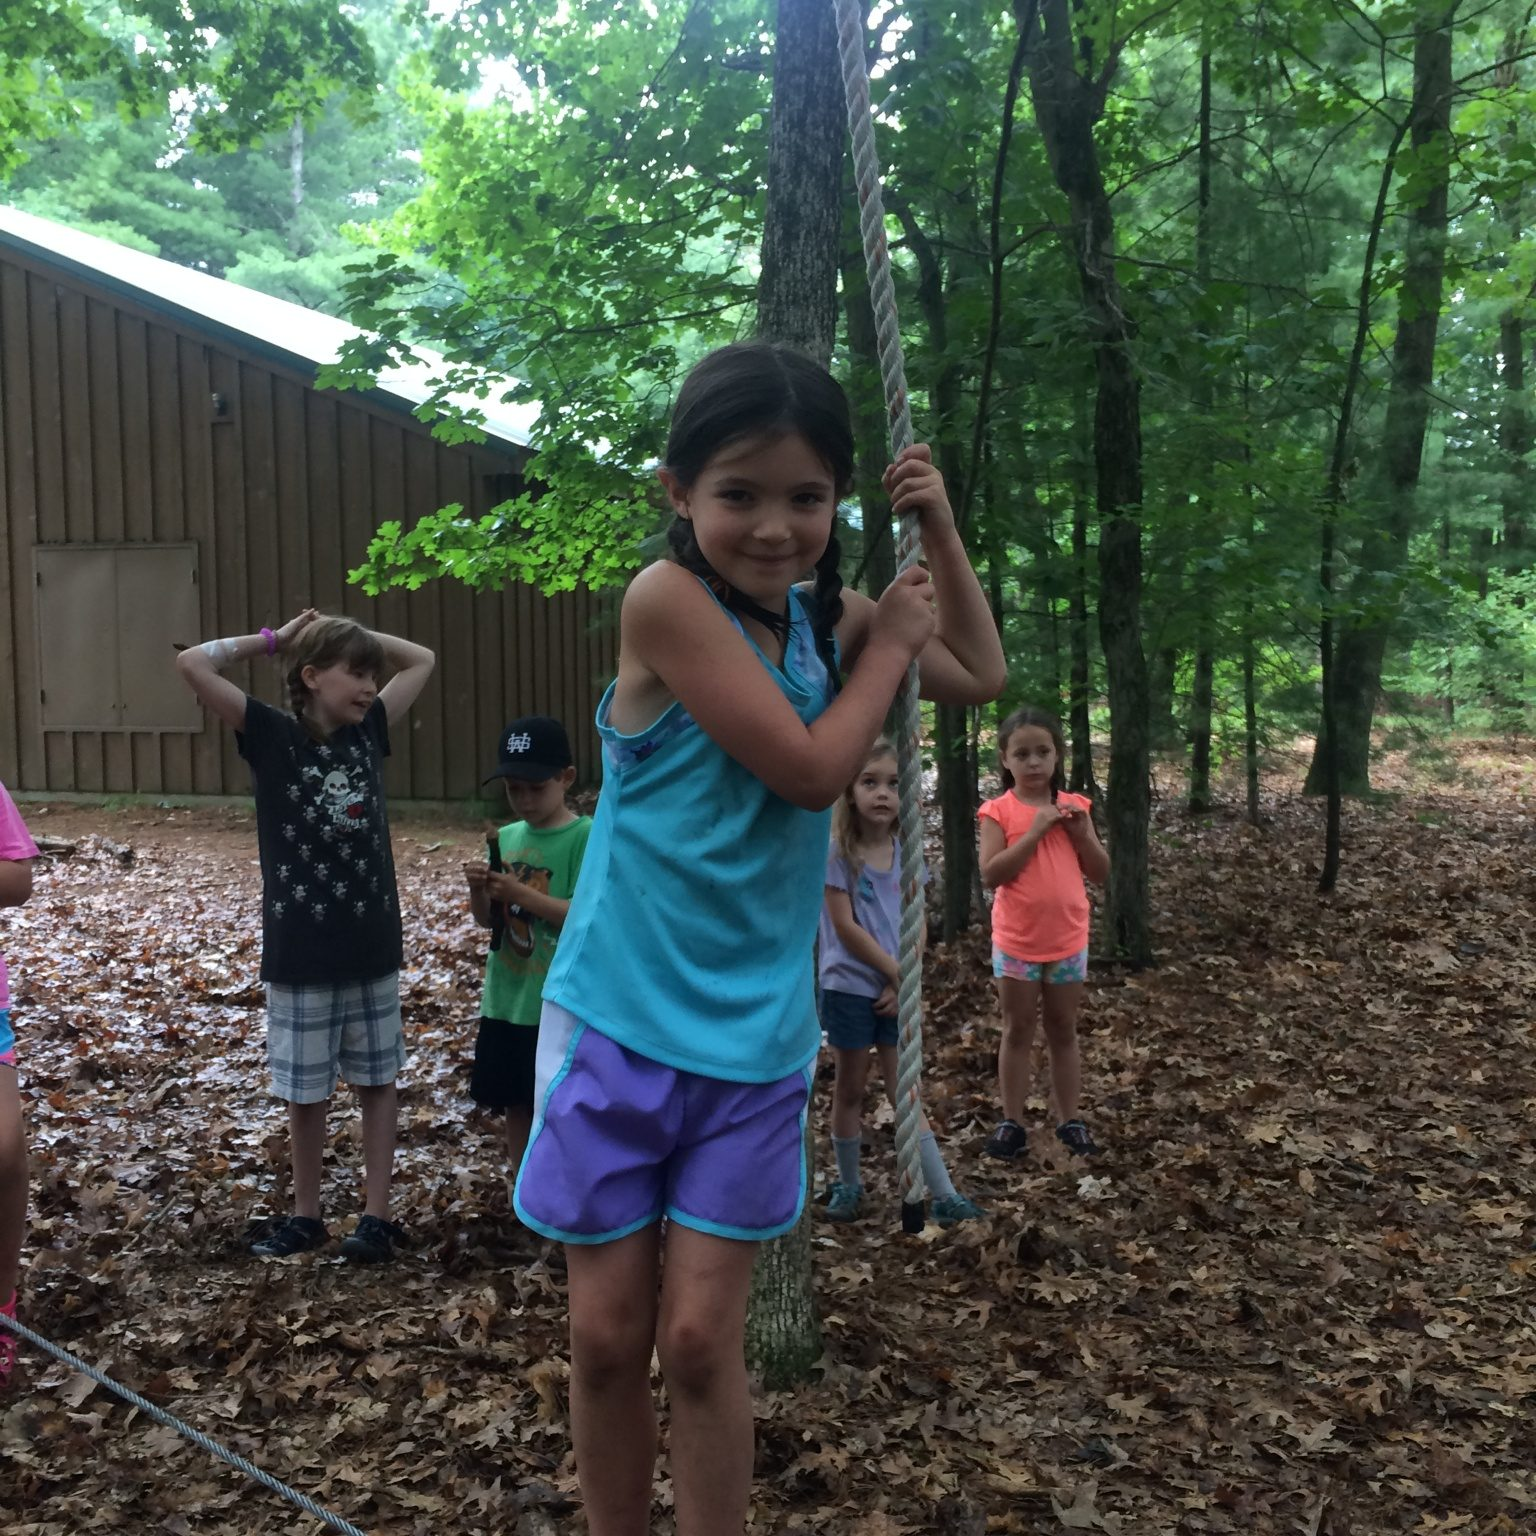 Youth experience low ropes challenges during an outing